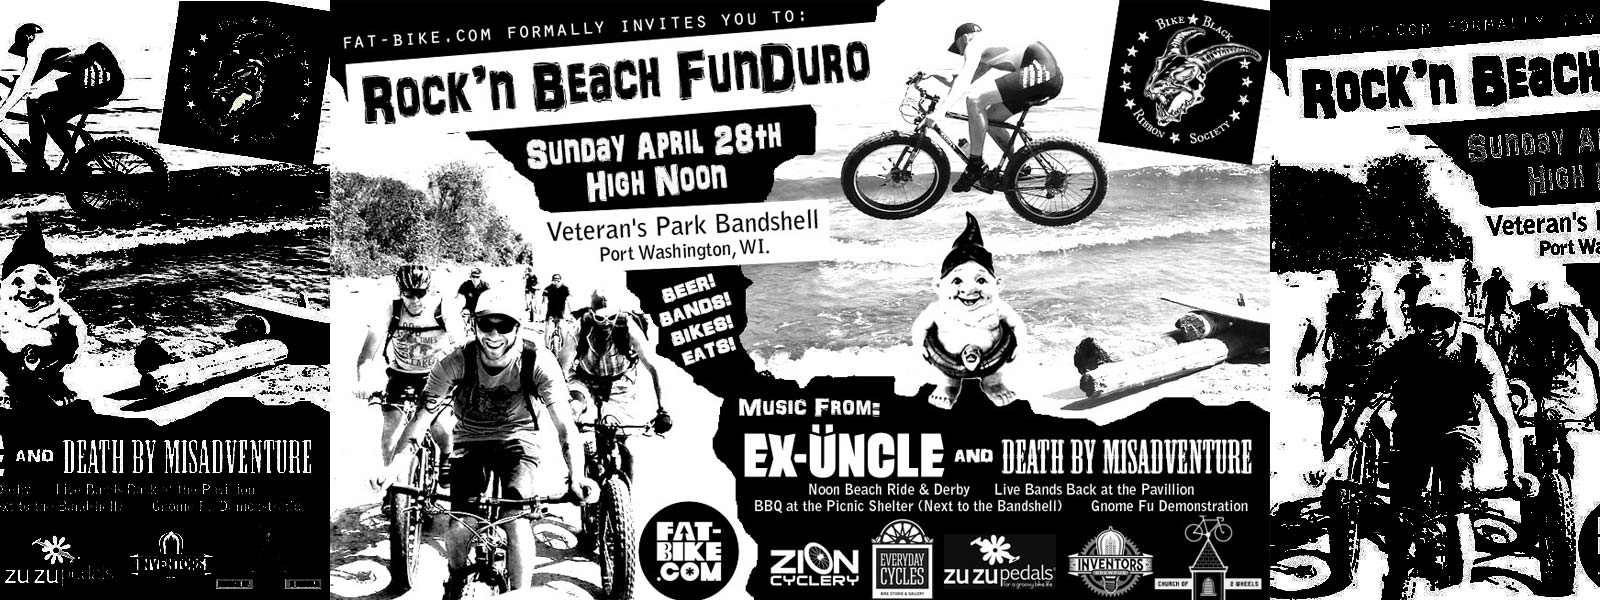 Join the Everyday Cycles Crew at The Rock'n Beach FunDuro in Port Washington